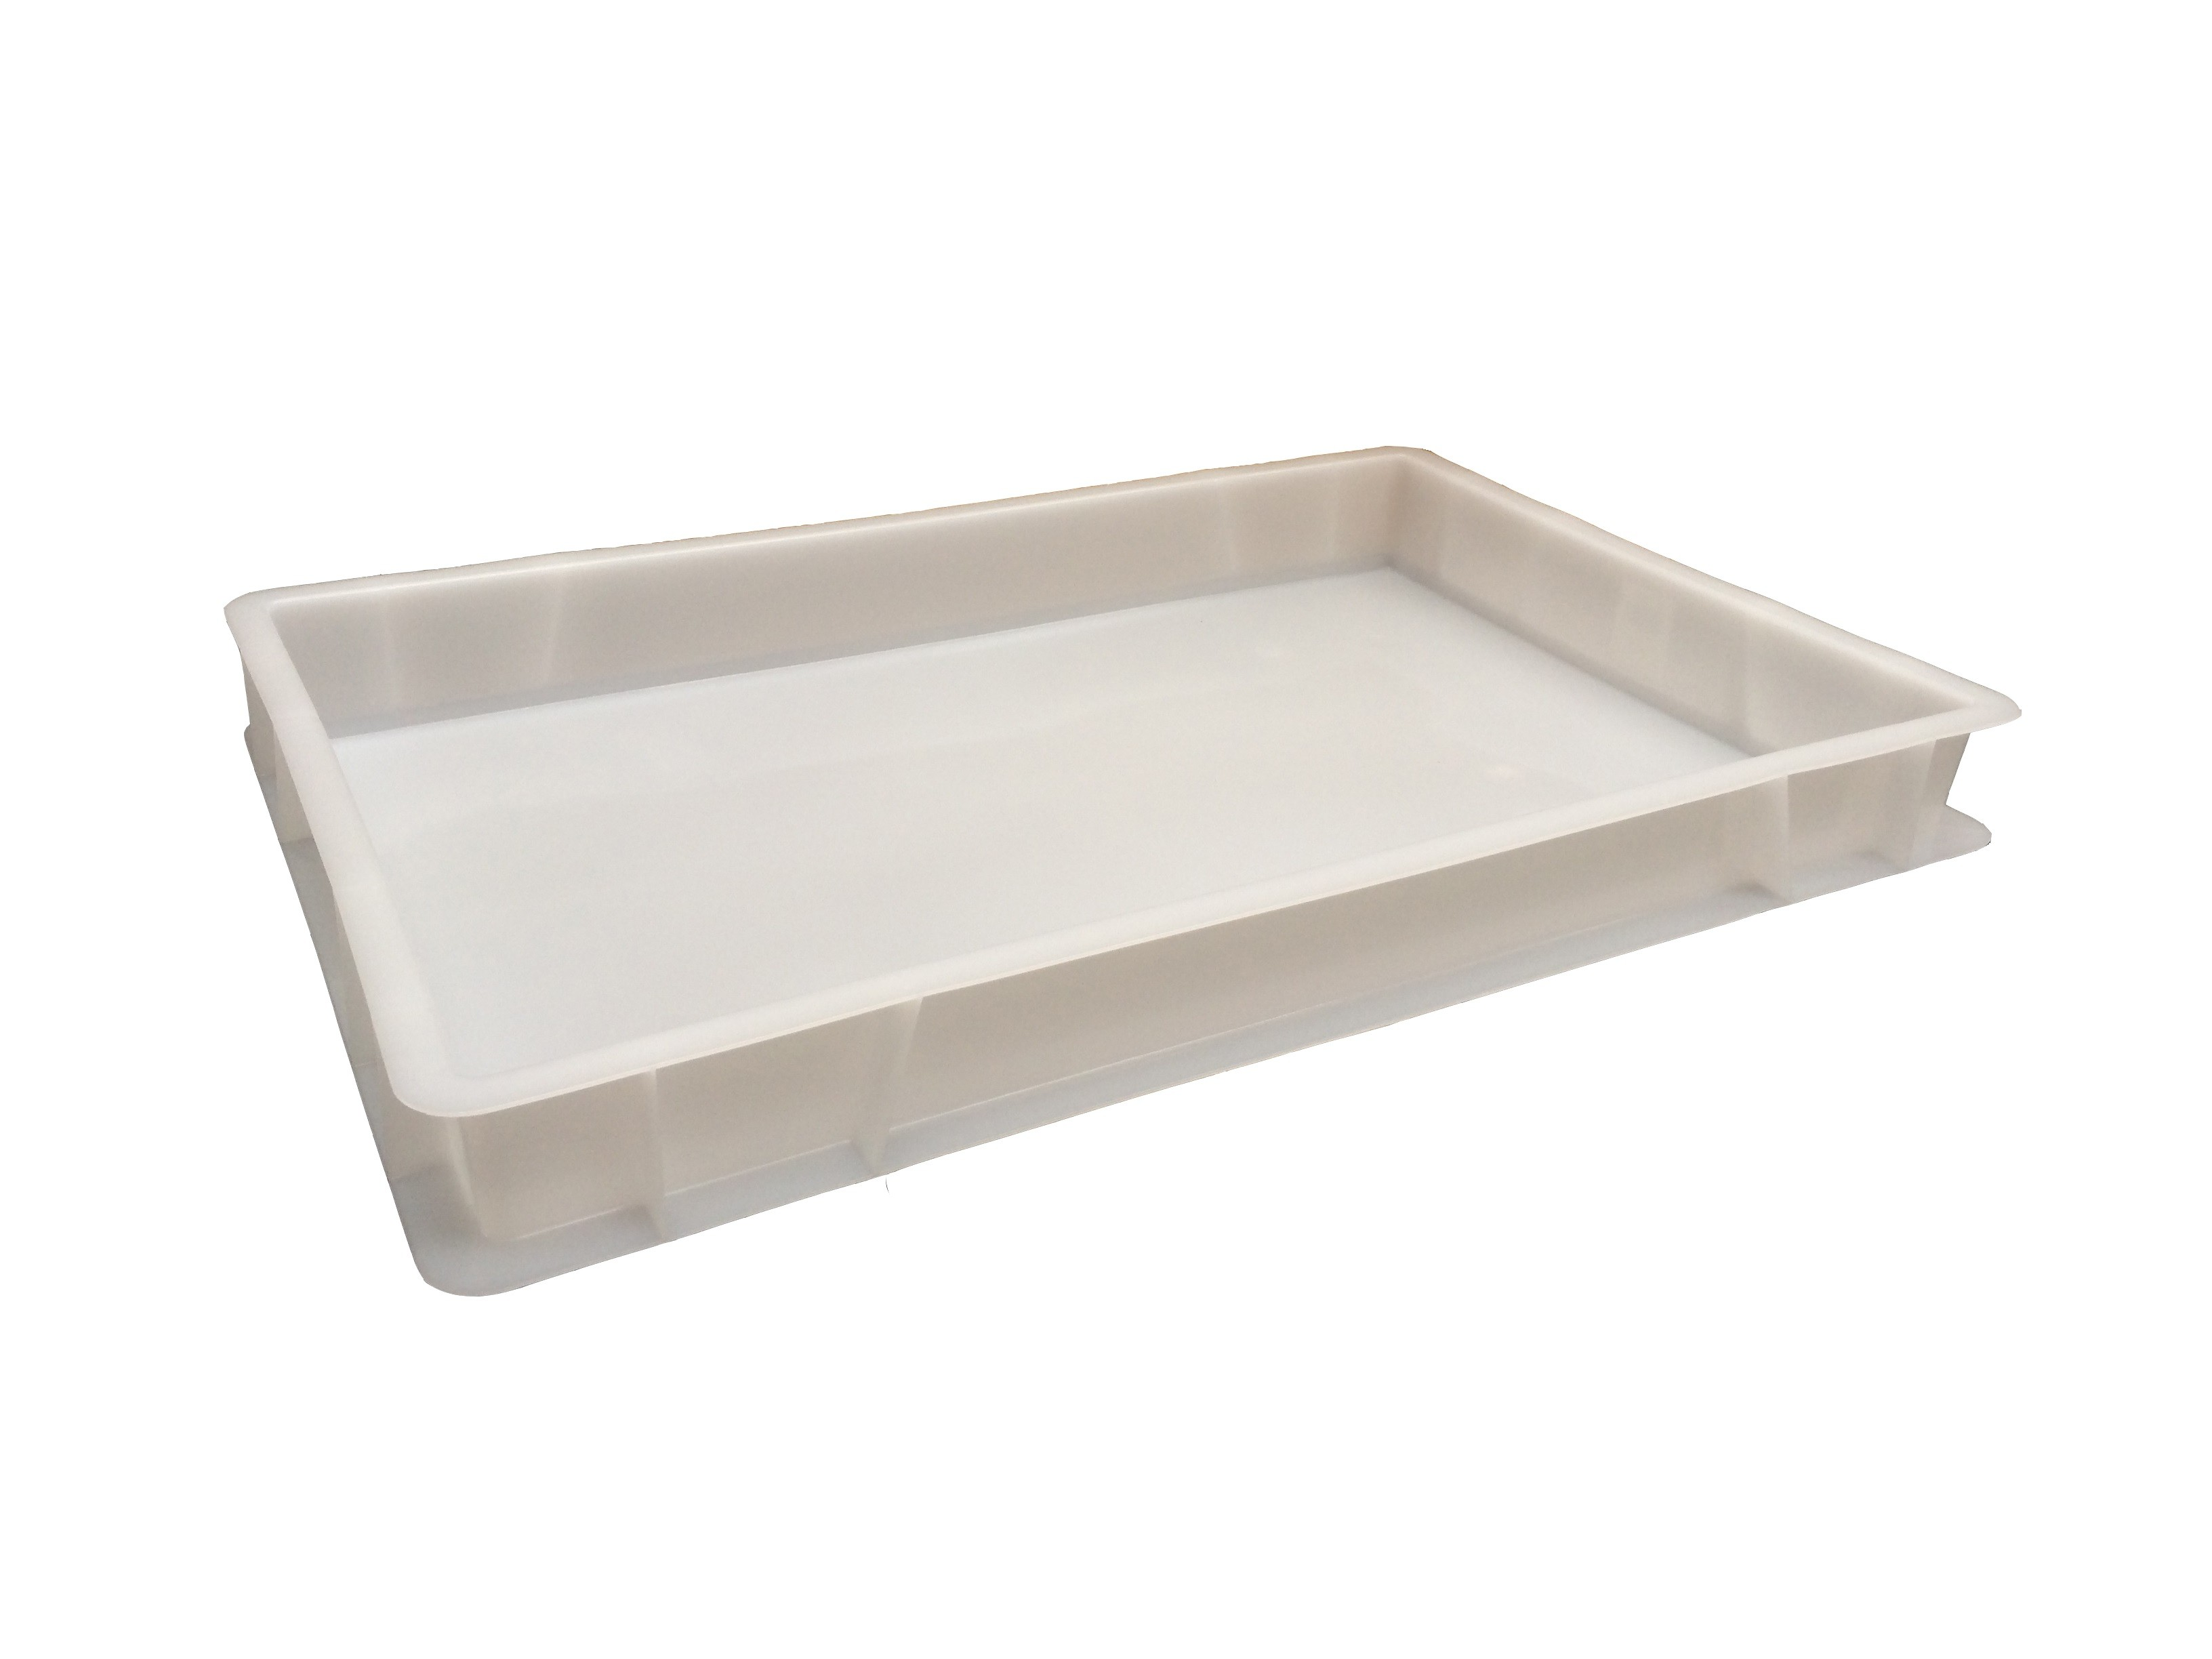 12 Litre Food Grade Plastic Euro Stacking Container / Commercial Stackable Pizza Confectionery Dough Tray